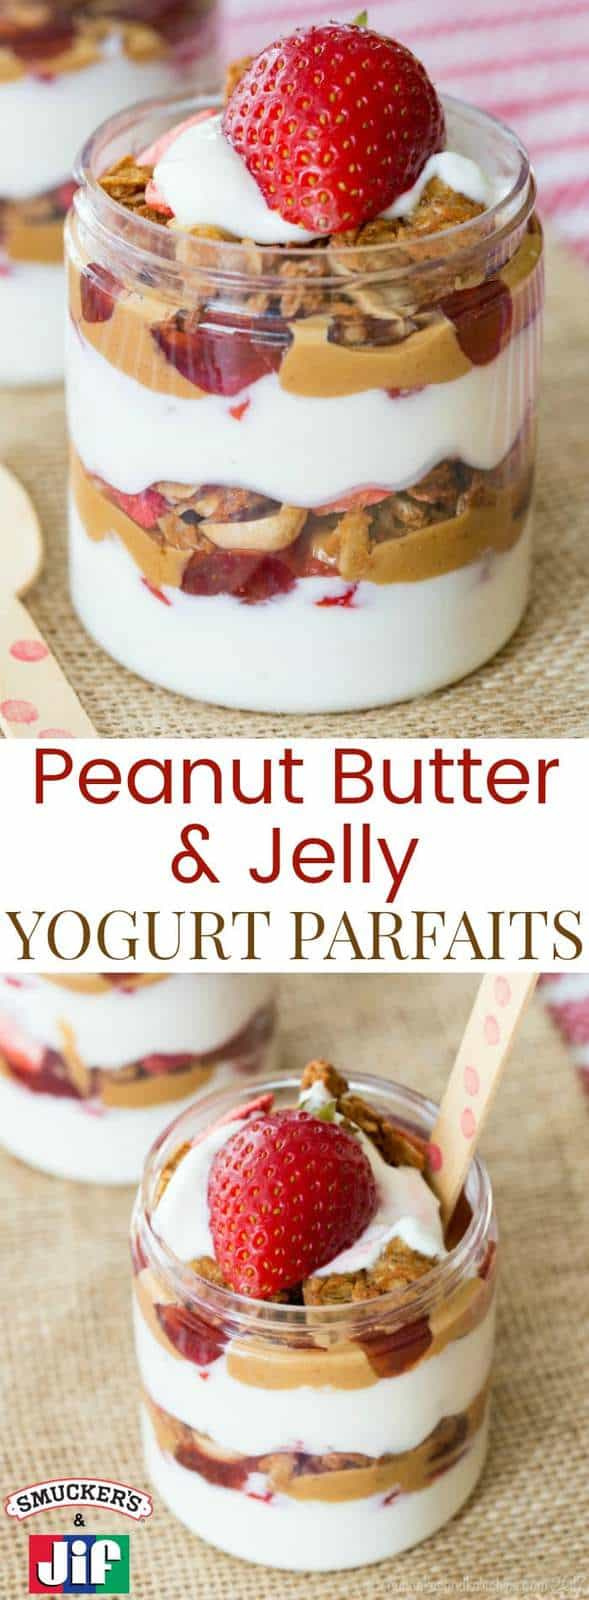 Peanut Butter and Jelly Yogurt Parfaits - layers of Greek yogurt, strawberries, Jif Natural Creamy Peanut Butter, Smucker's Natural Strawberry Fruit Spread, and PB&J granola are a fun way to enjoy peanut butter and jelly for breakfast or an after school snack. A recipe with lots of #PBJlove. #ad